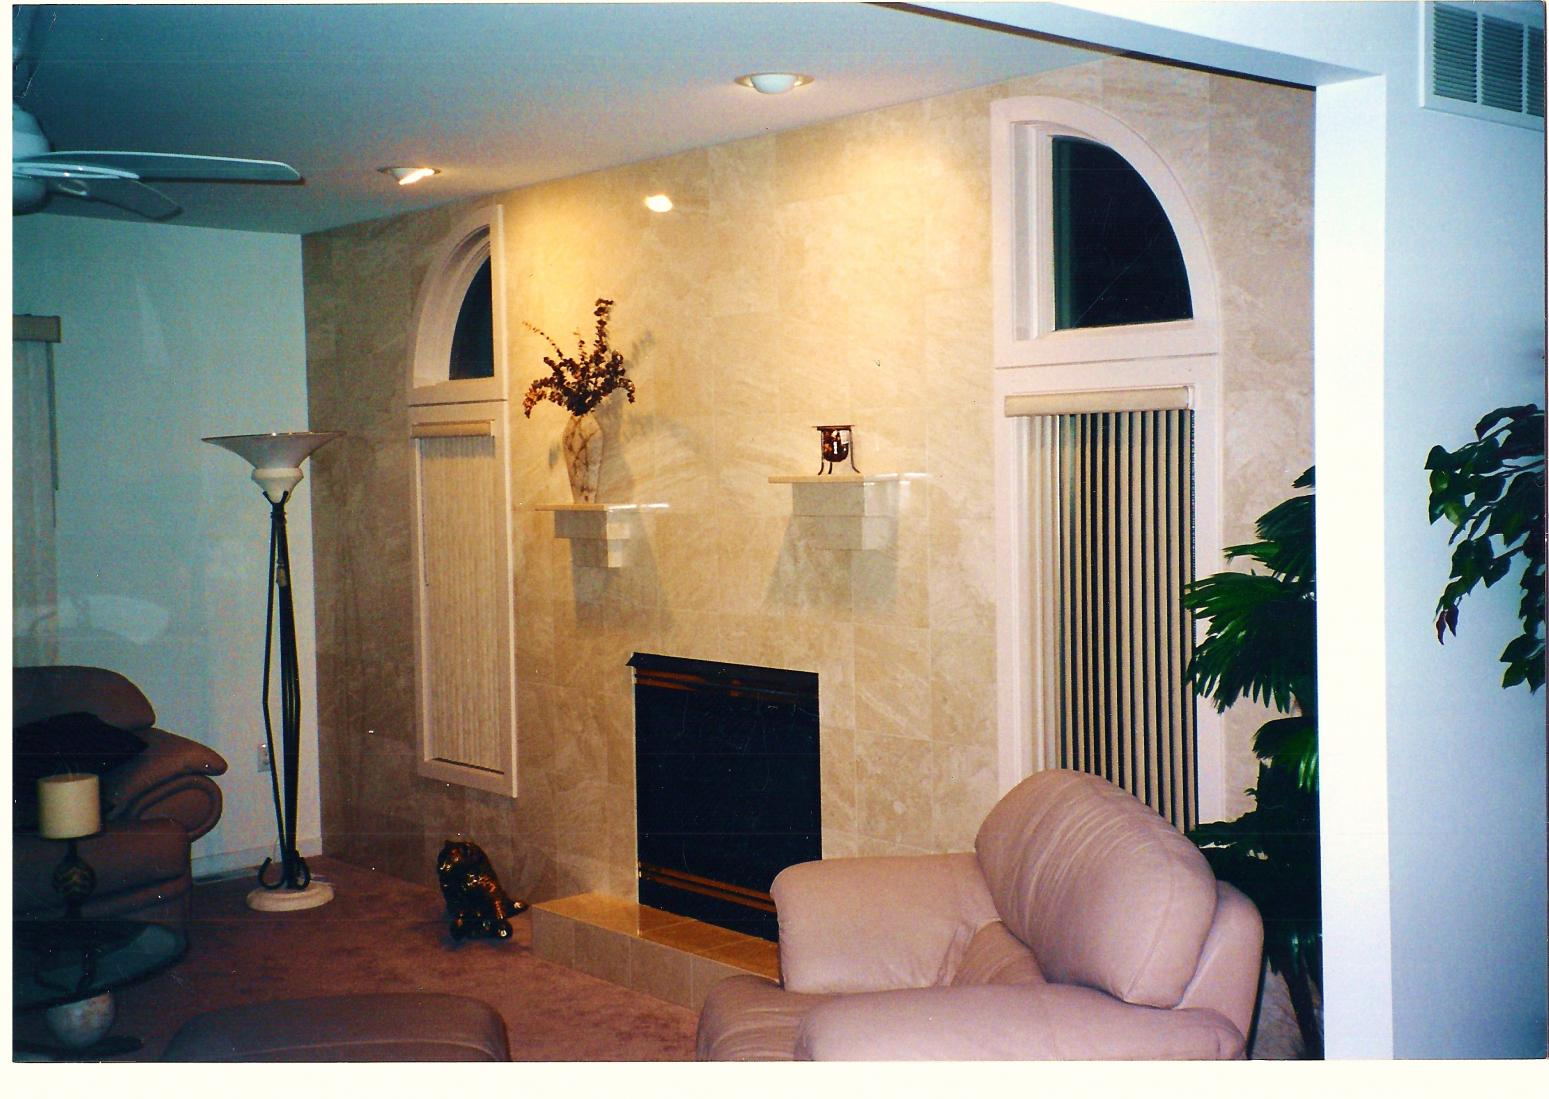 How to trim an arched window-035-2-1.jpg